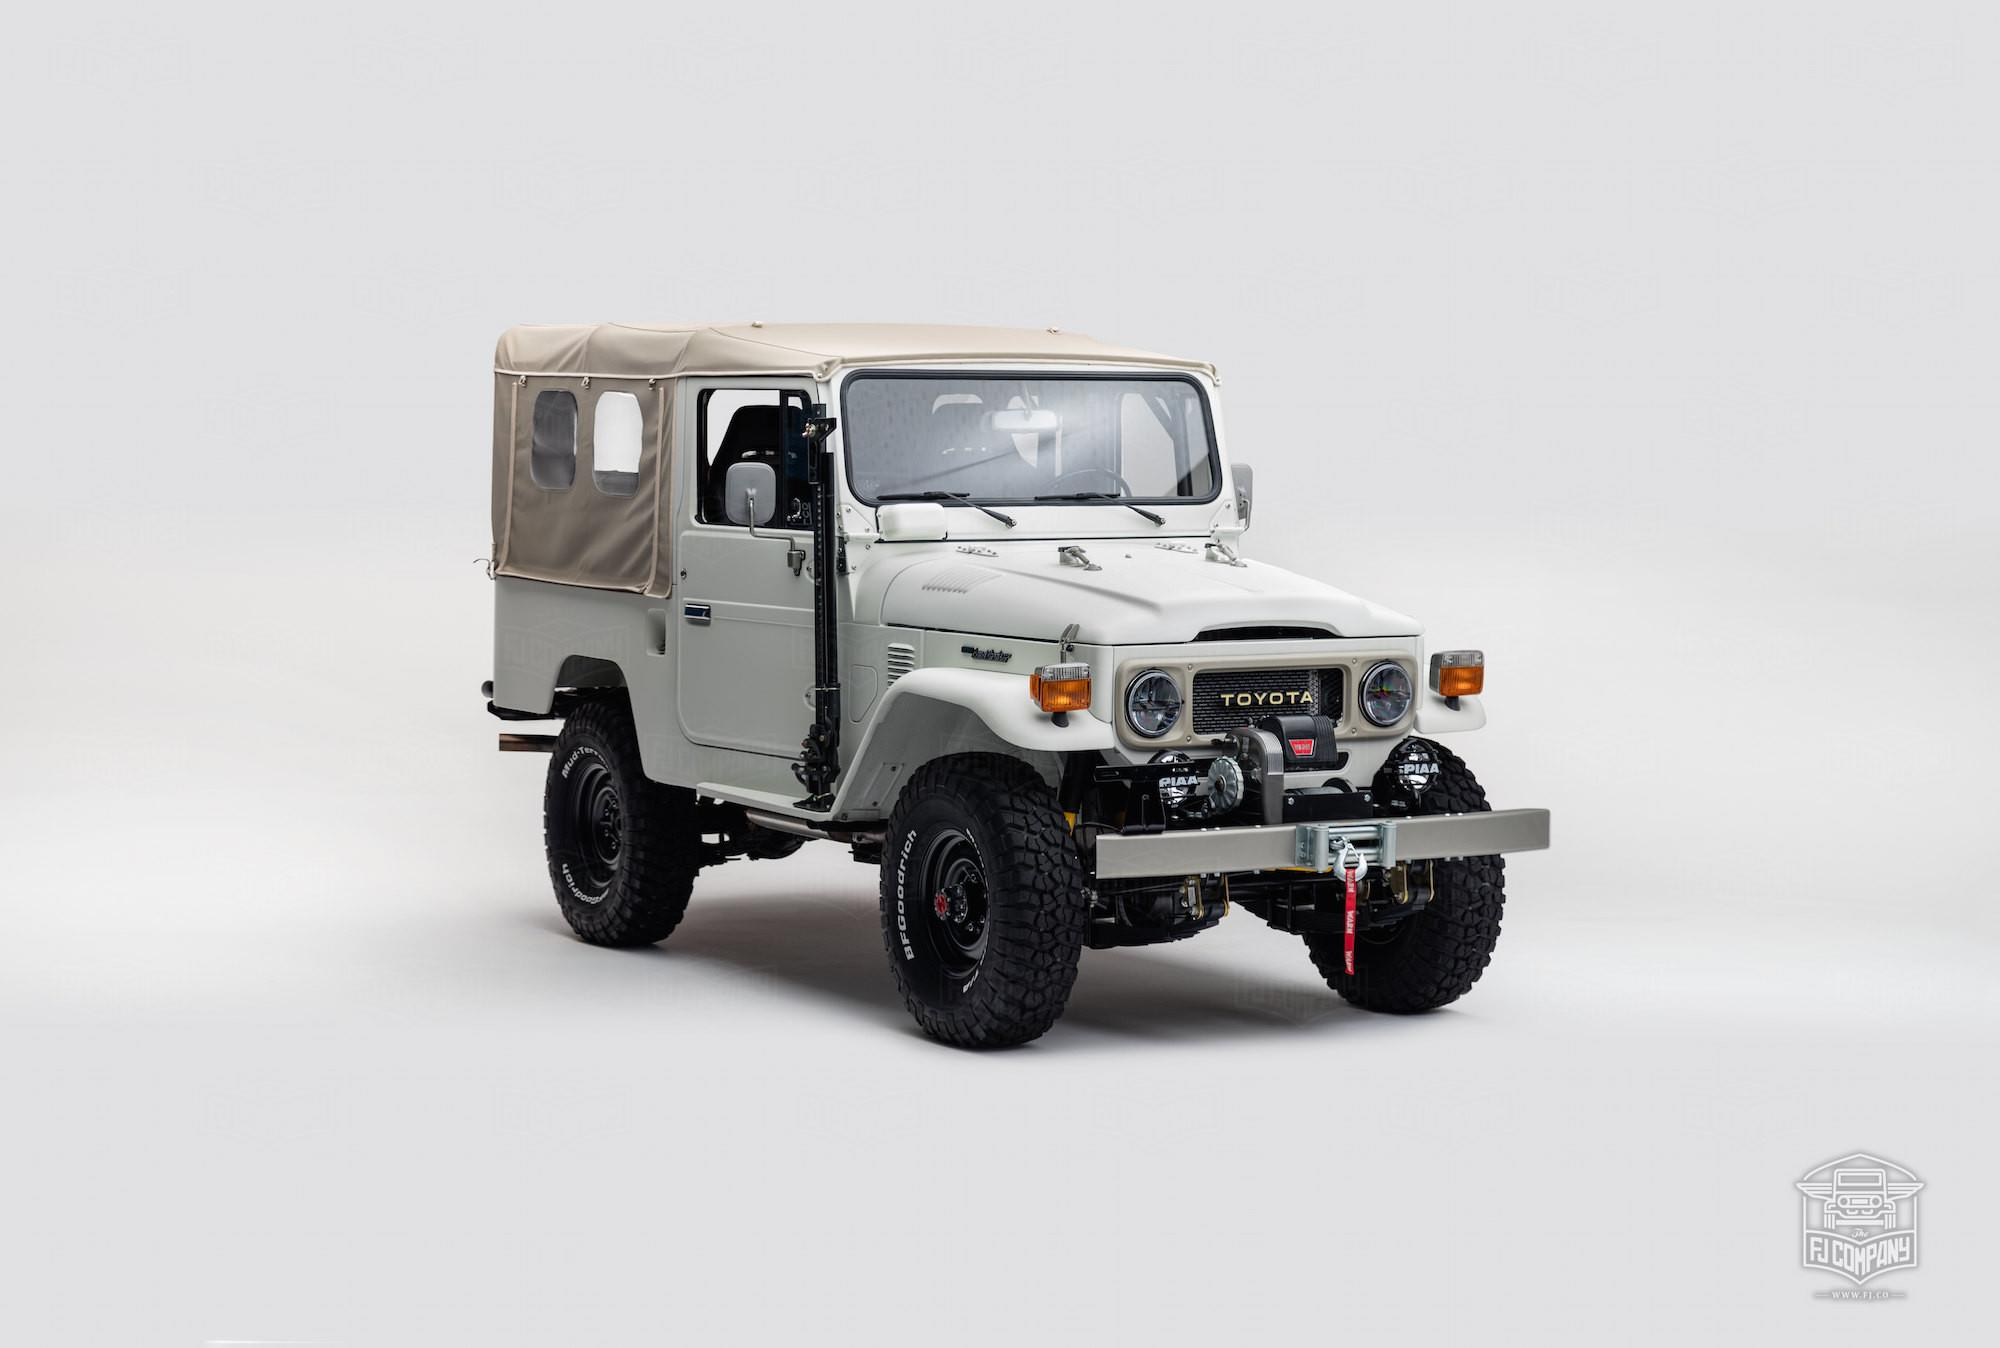 Land Cruiser Restoration >> Old Glory Gets An Upgrade With This Toyota Fj Land Cruiser